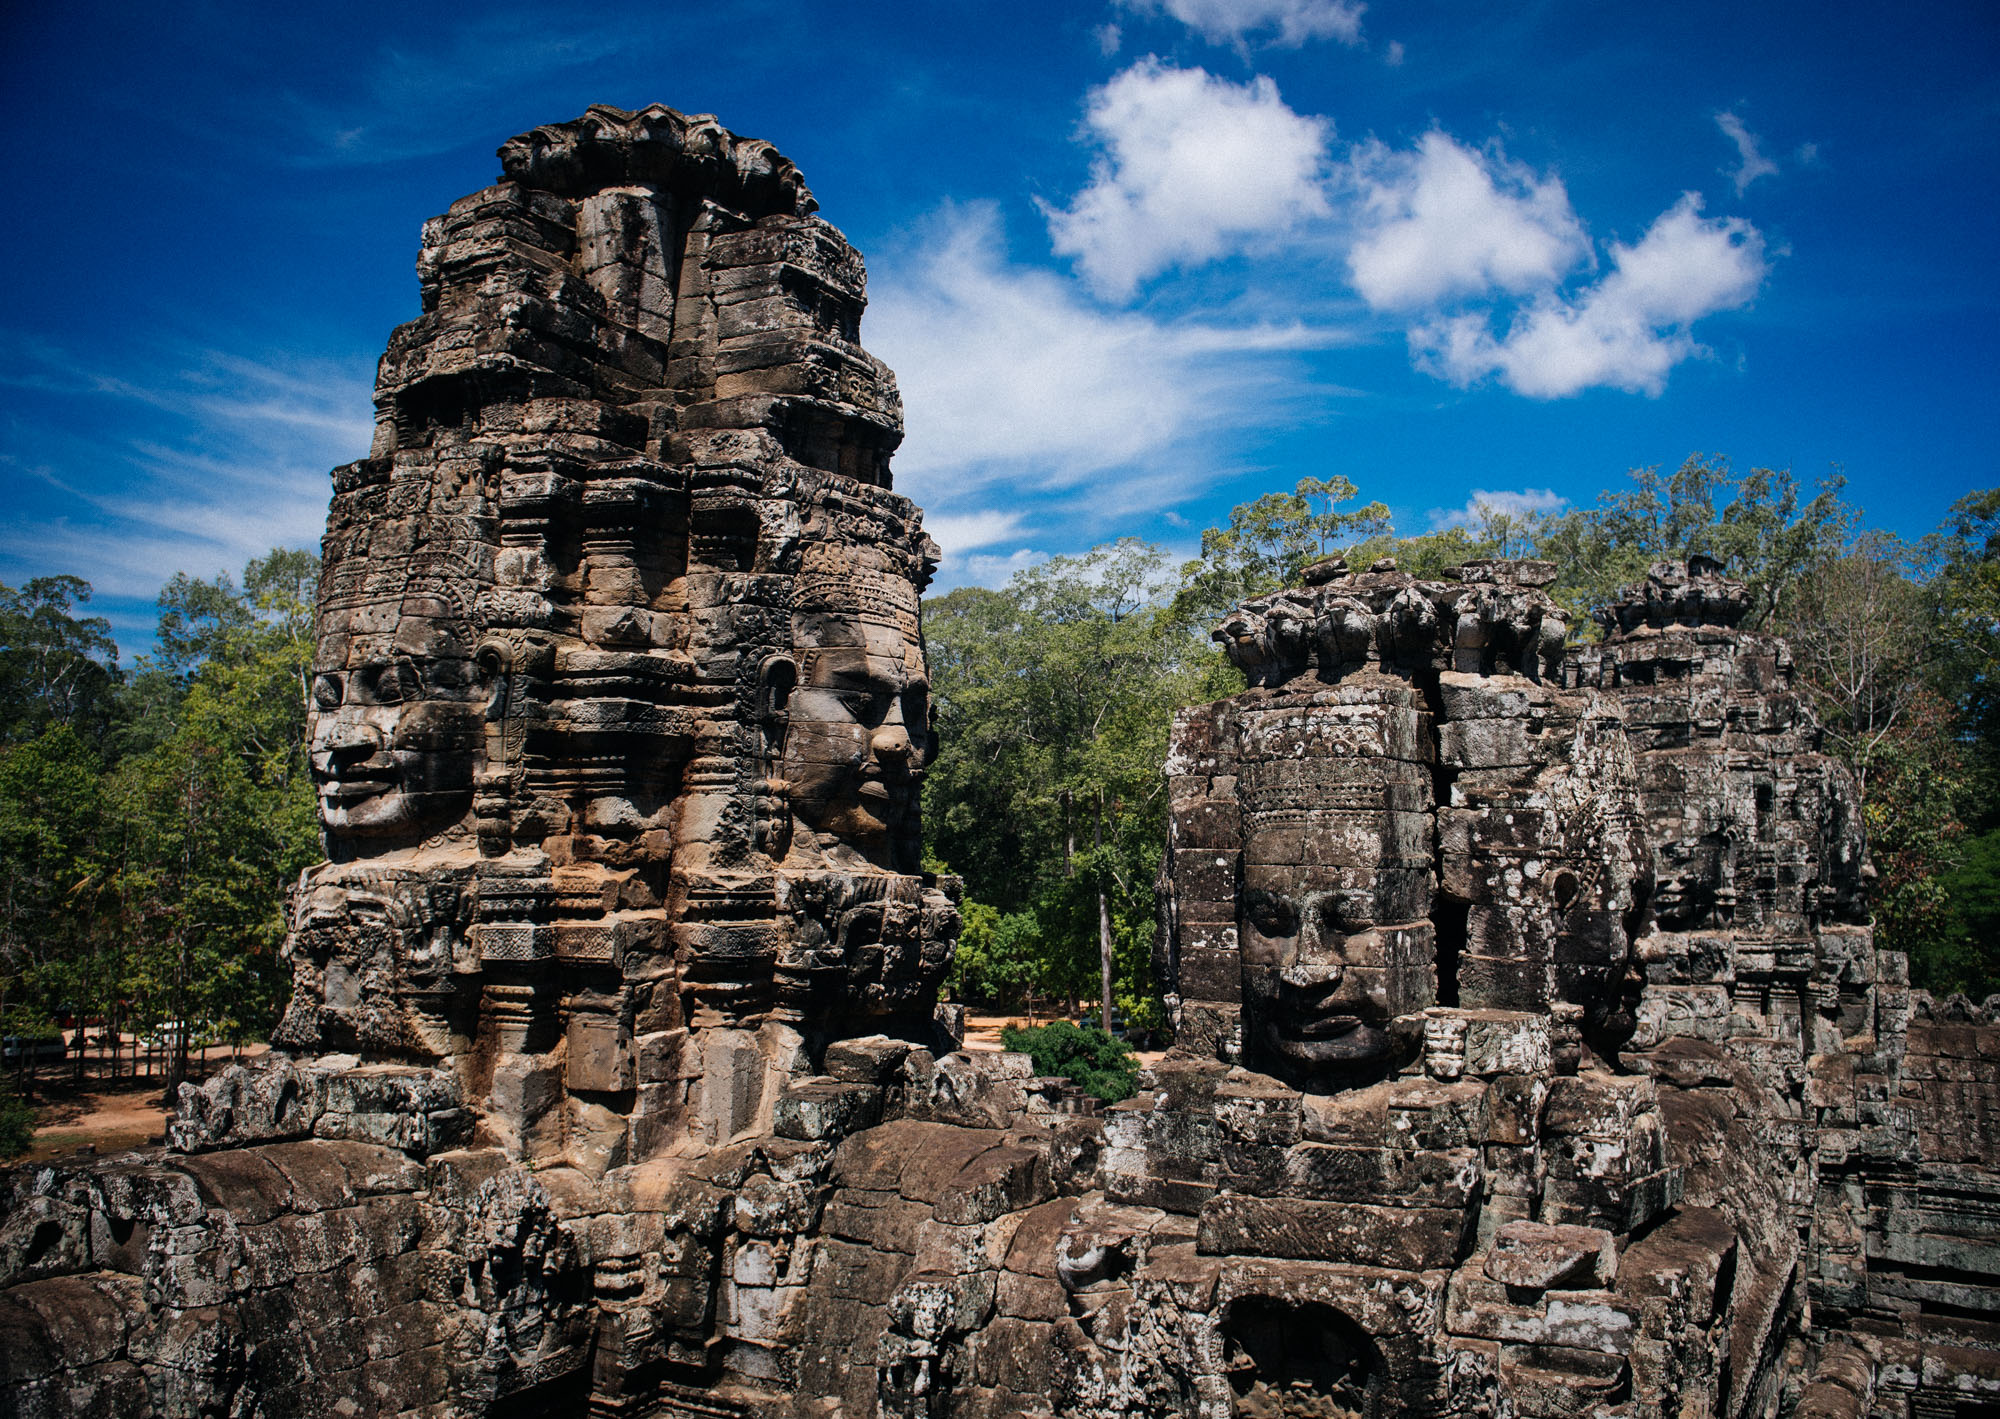 The Bayon has around 216 faces thought by some scholars to be the image of king Jayavarman VII himself, while others believe them to be the bodhisattva  Lokesvara .